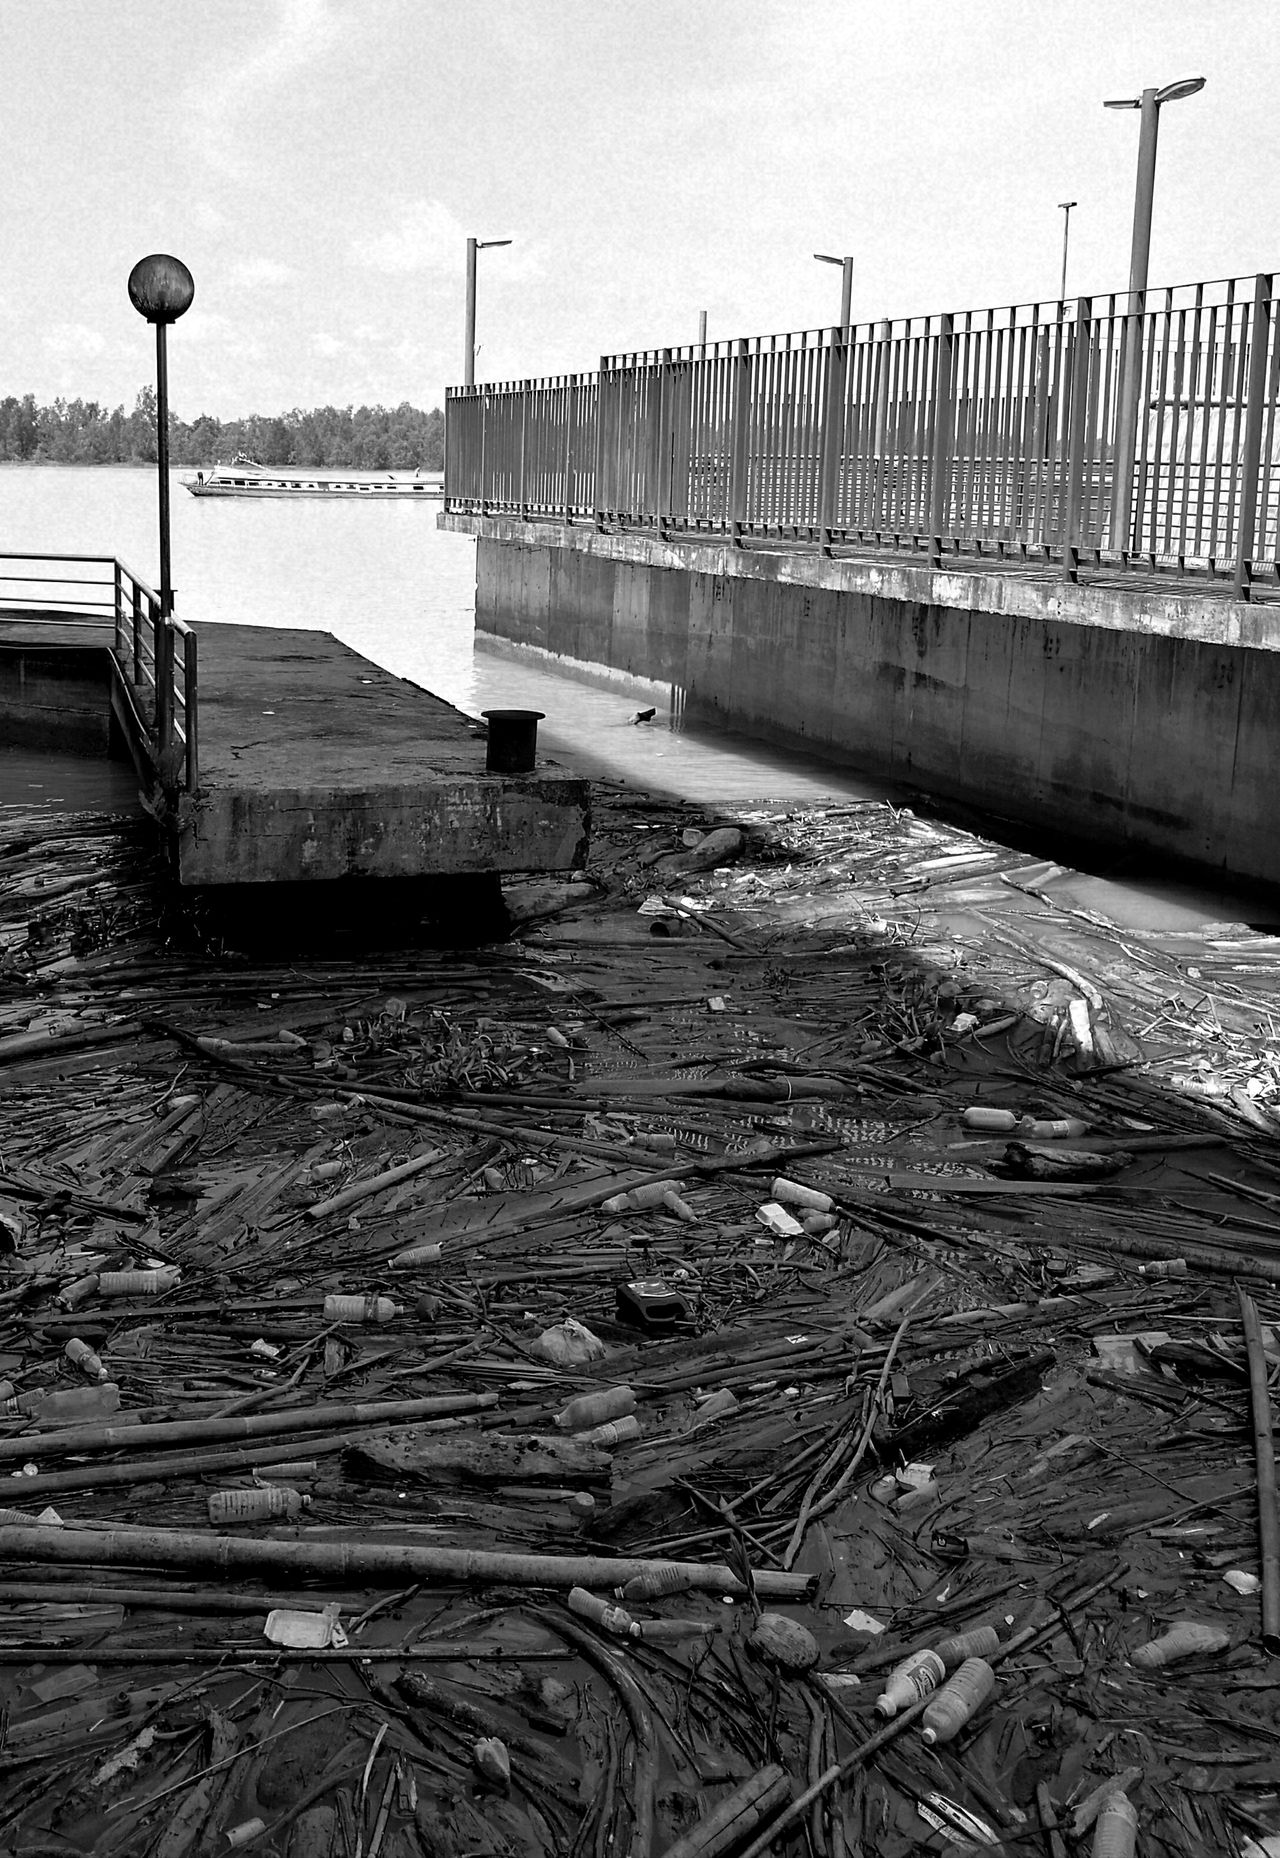 Stop harming our rivers. Pollutions Environmental Issues Environmental Conservation River Love Earth Stop Littering Rubbish Save The Planet Save The River Black And White Photography Waterfront Pier No People